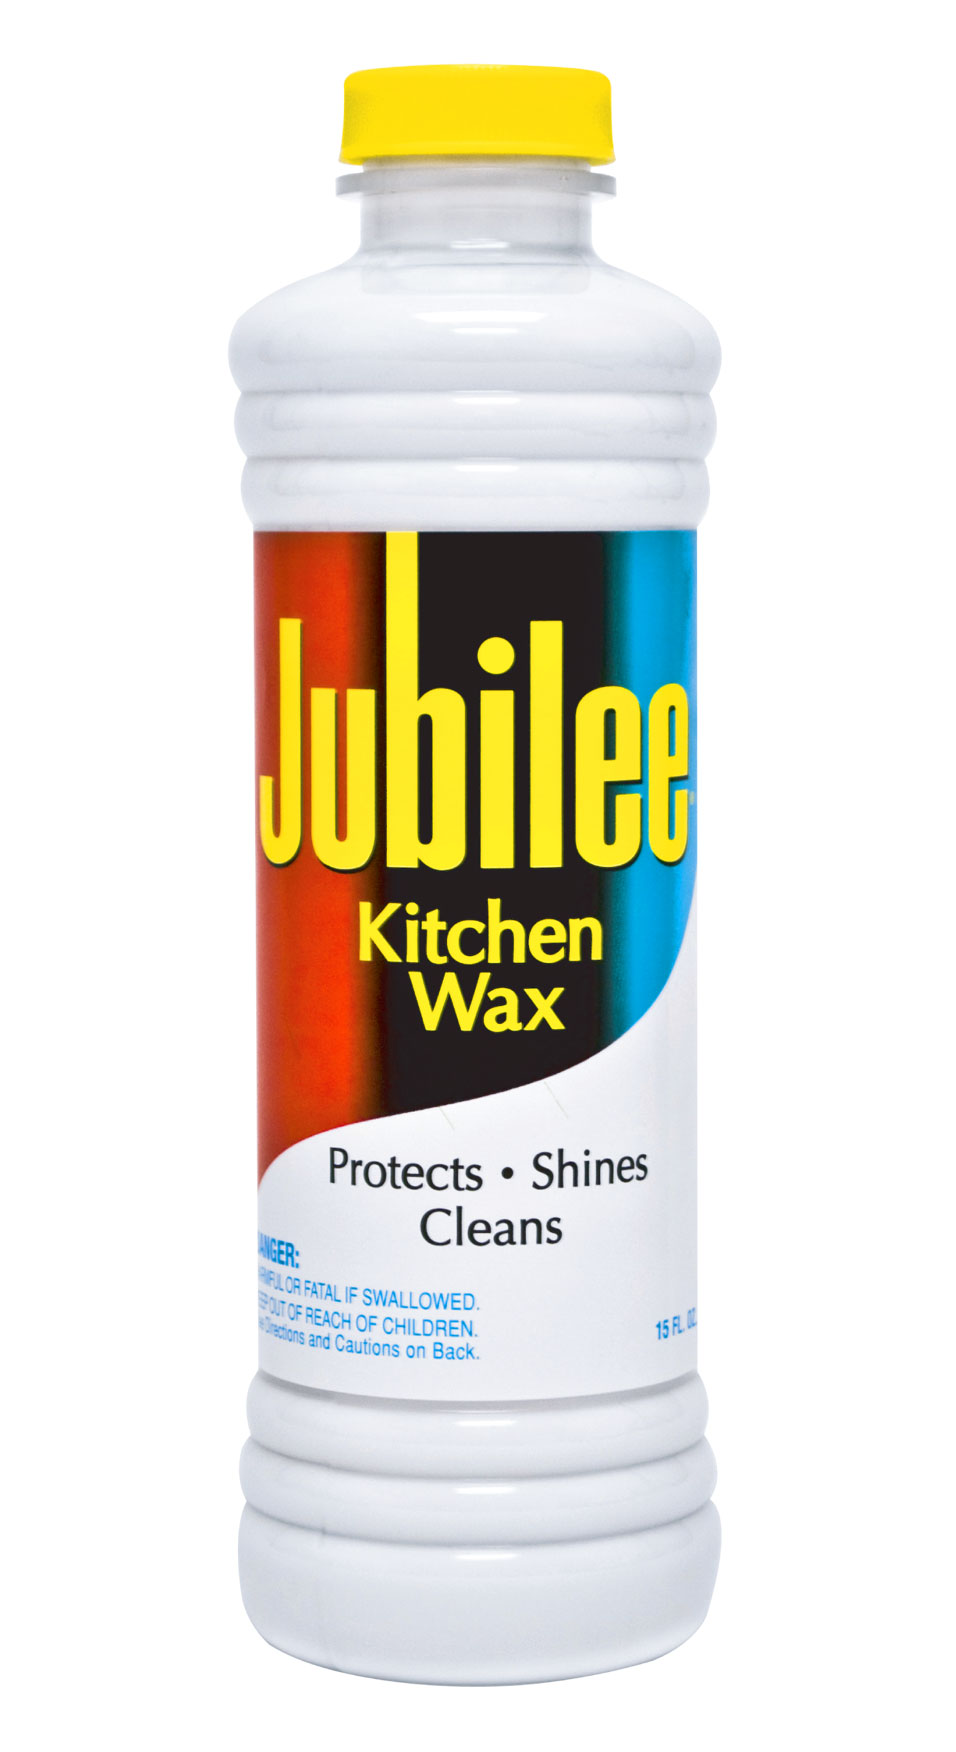 full size - Jubilee Kitchen Wax